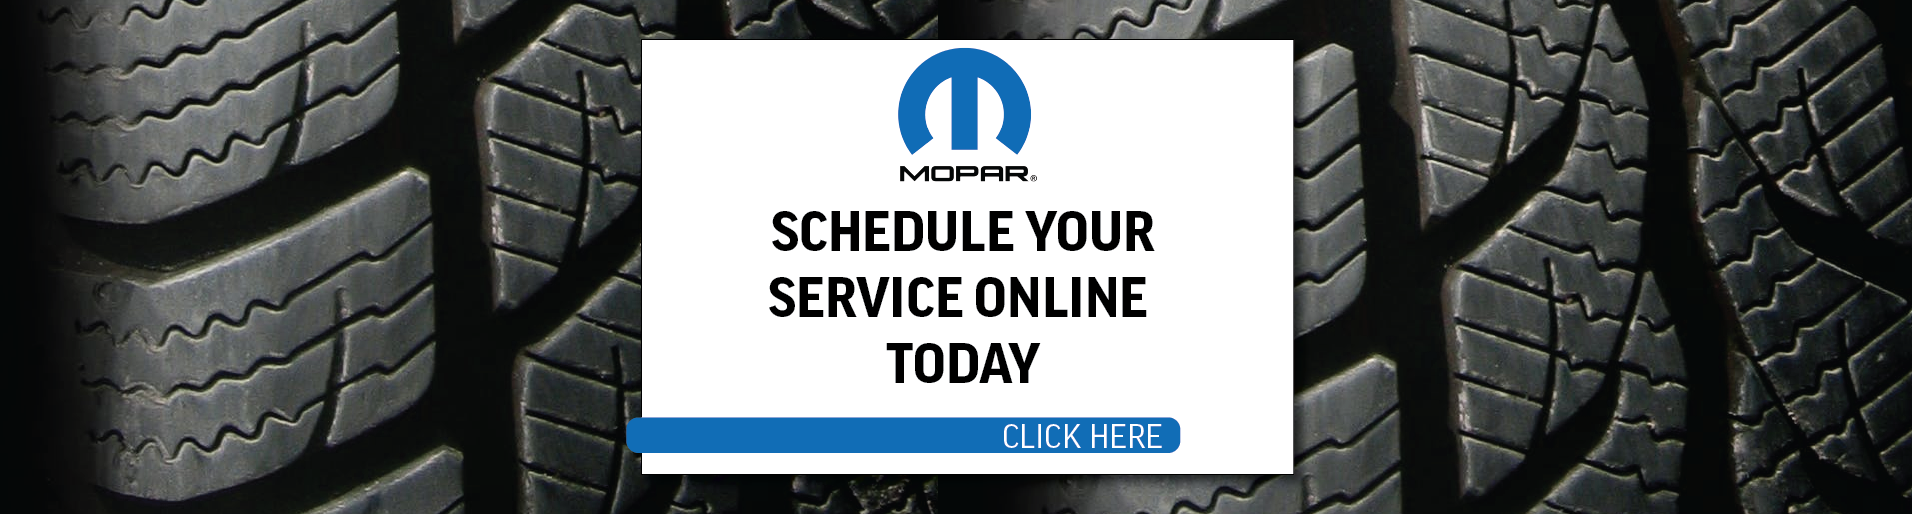 button to schedule your service online